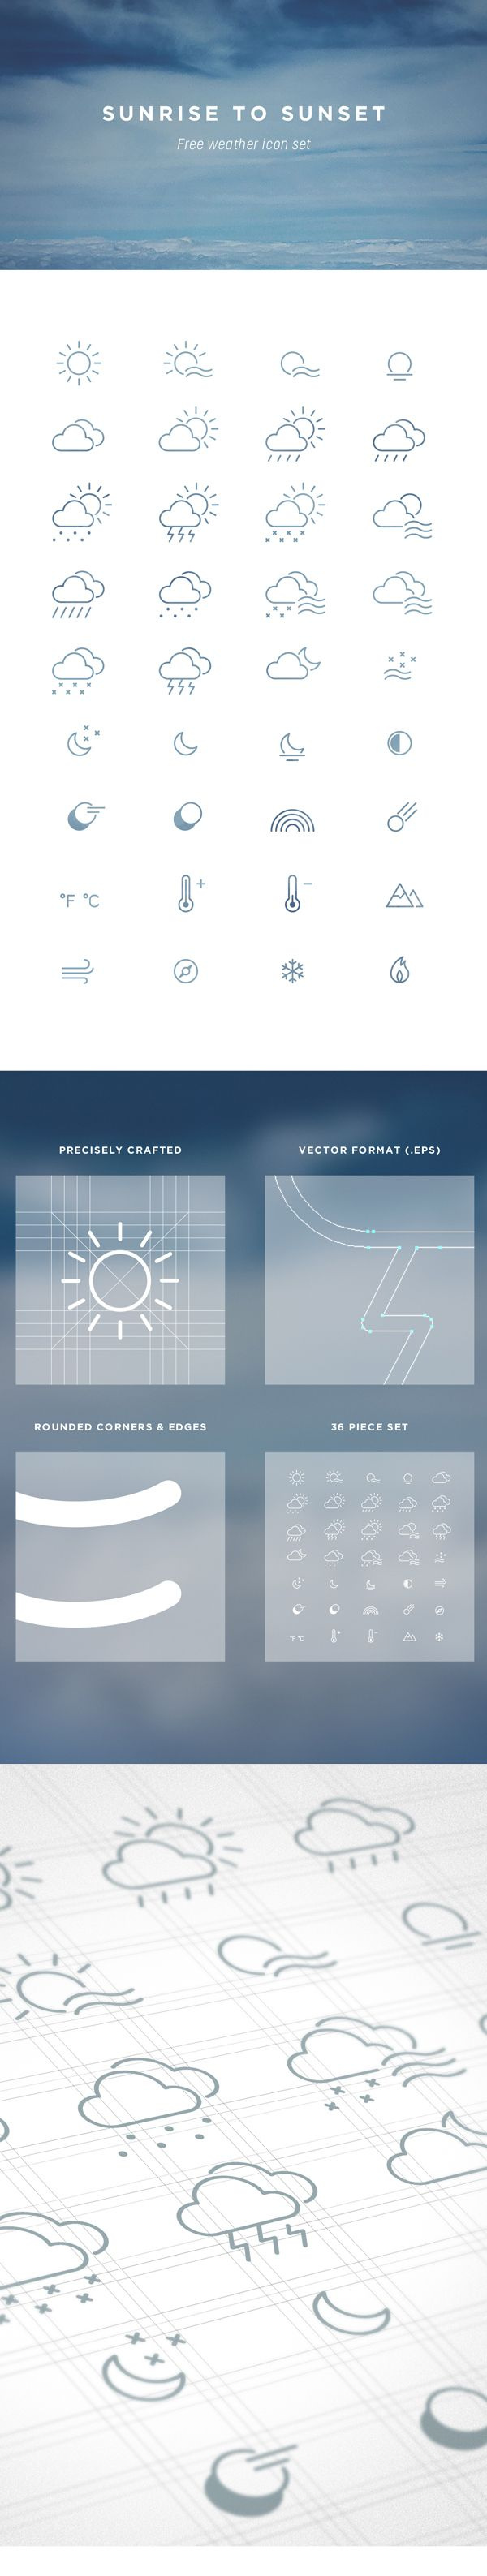 Weather icons pack by Marc-Antoine Roy, via Behance